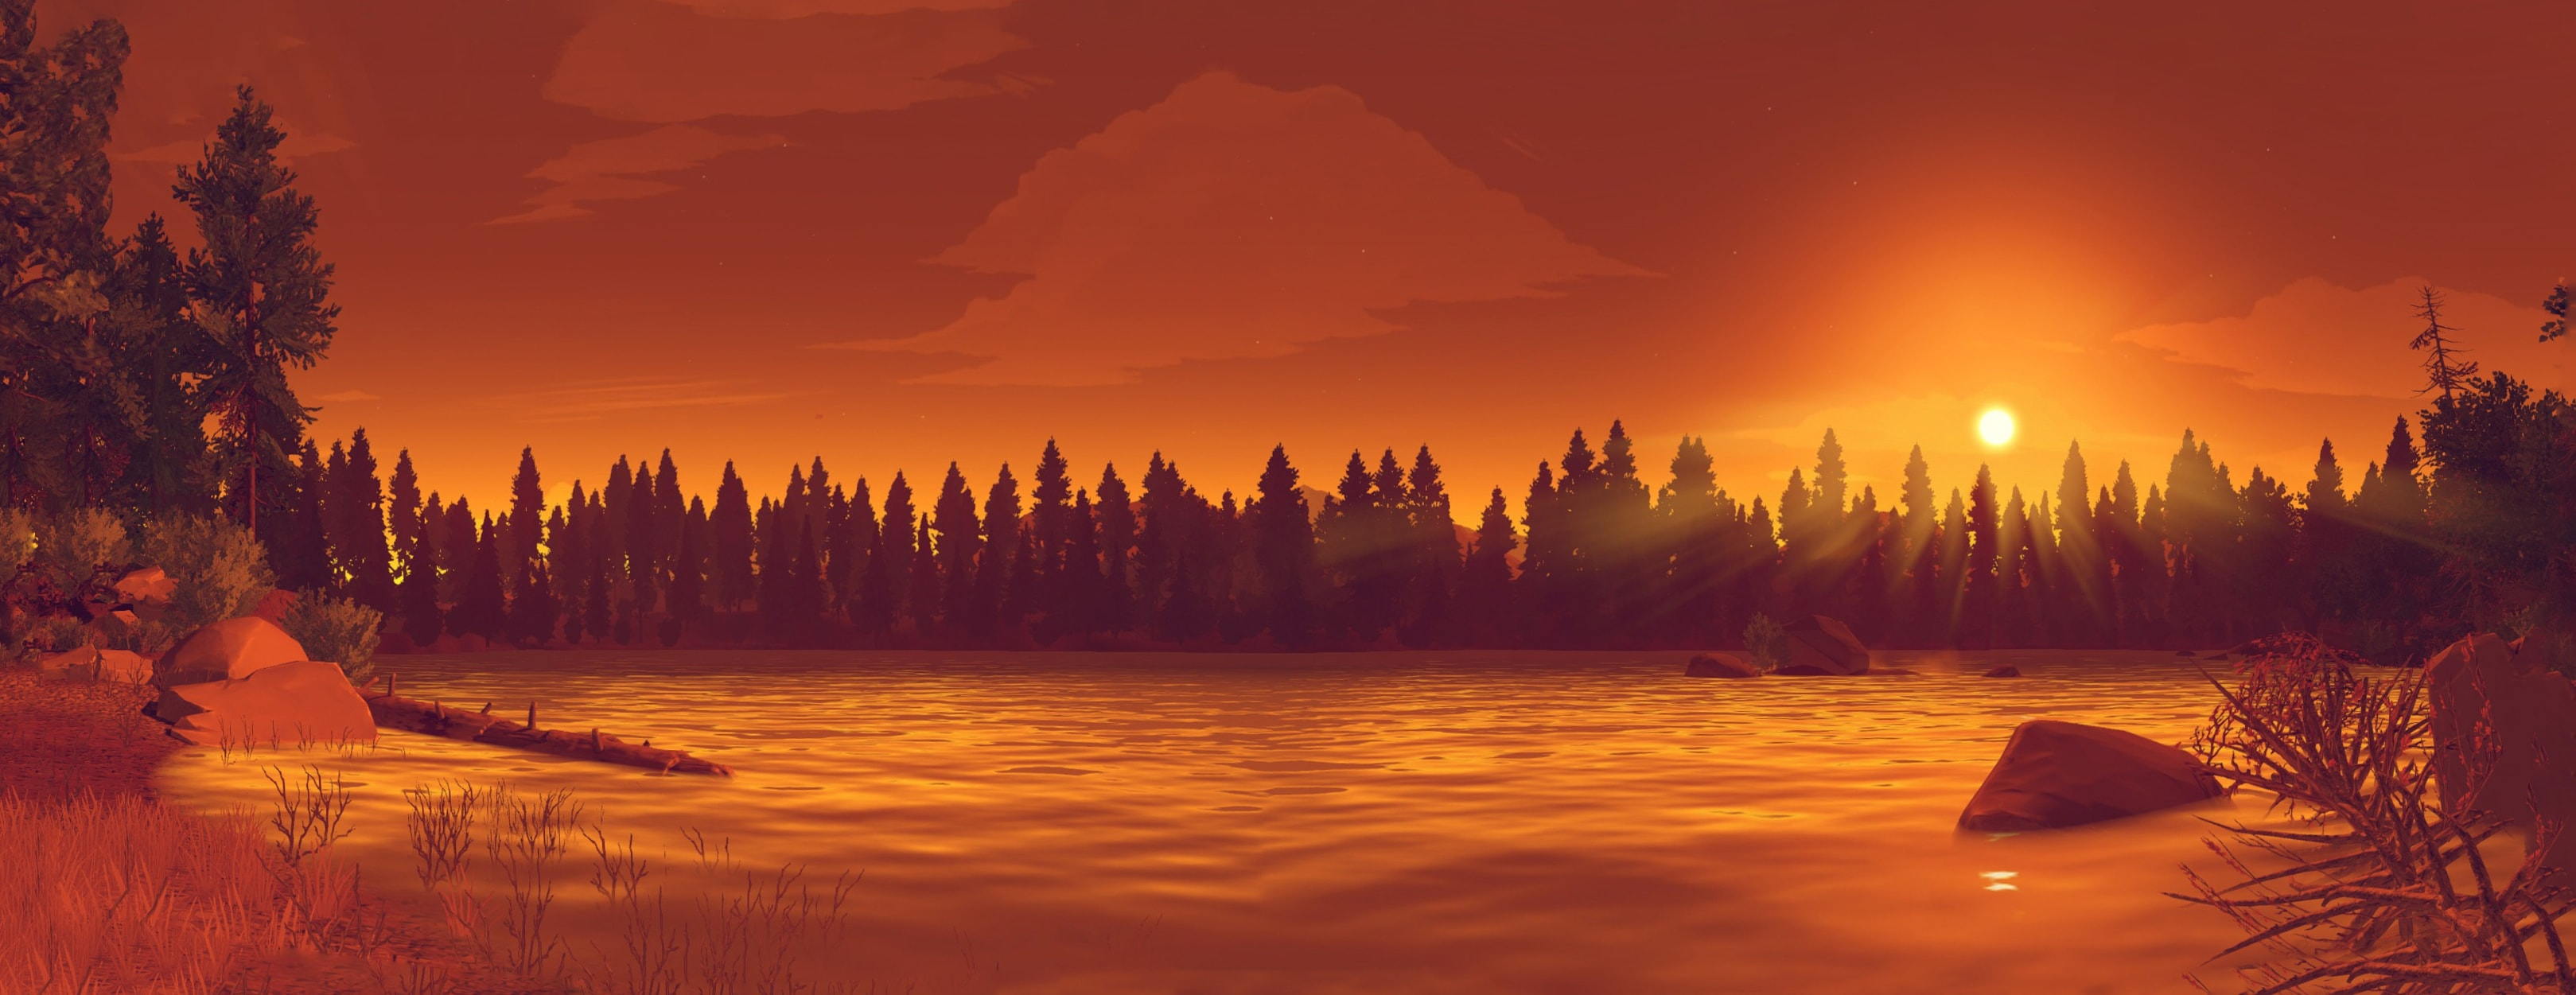 Firewatch Desktop wallpaper